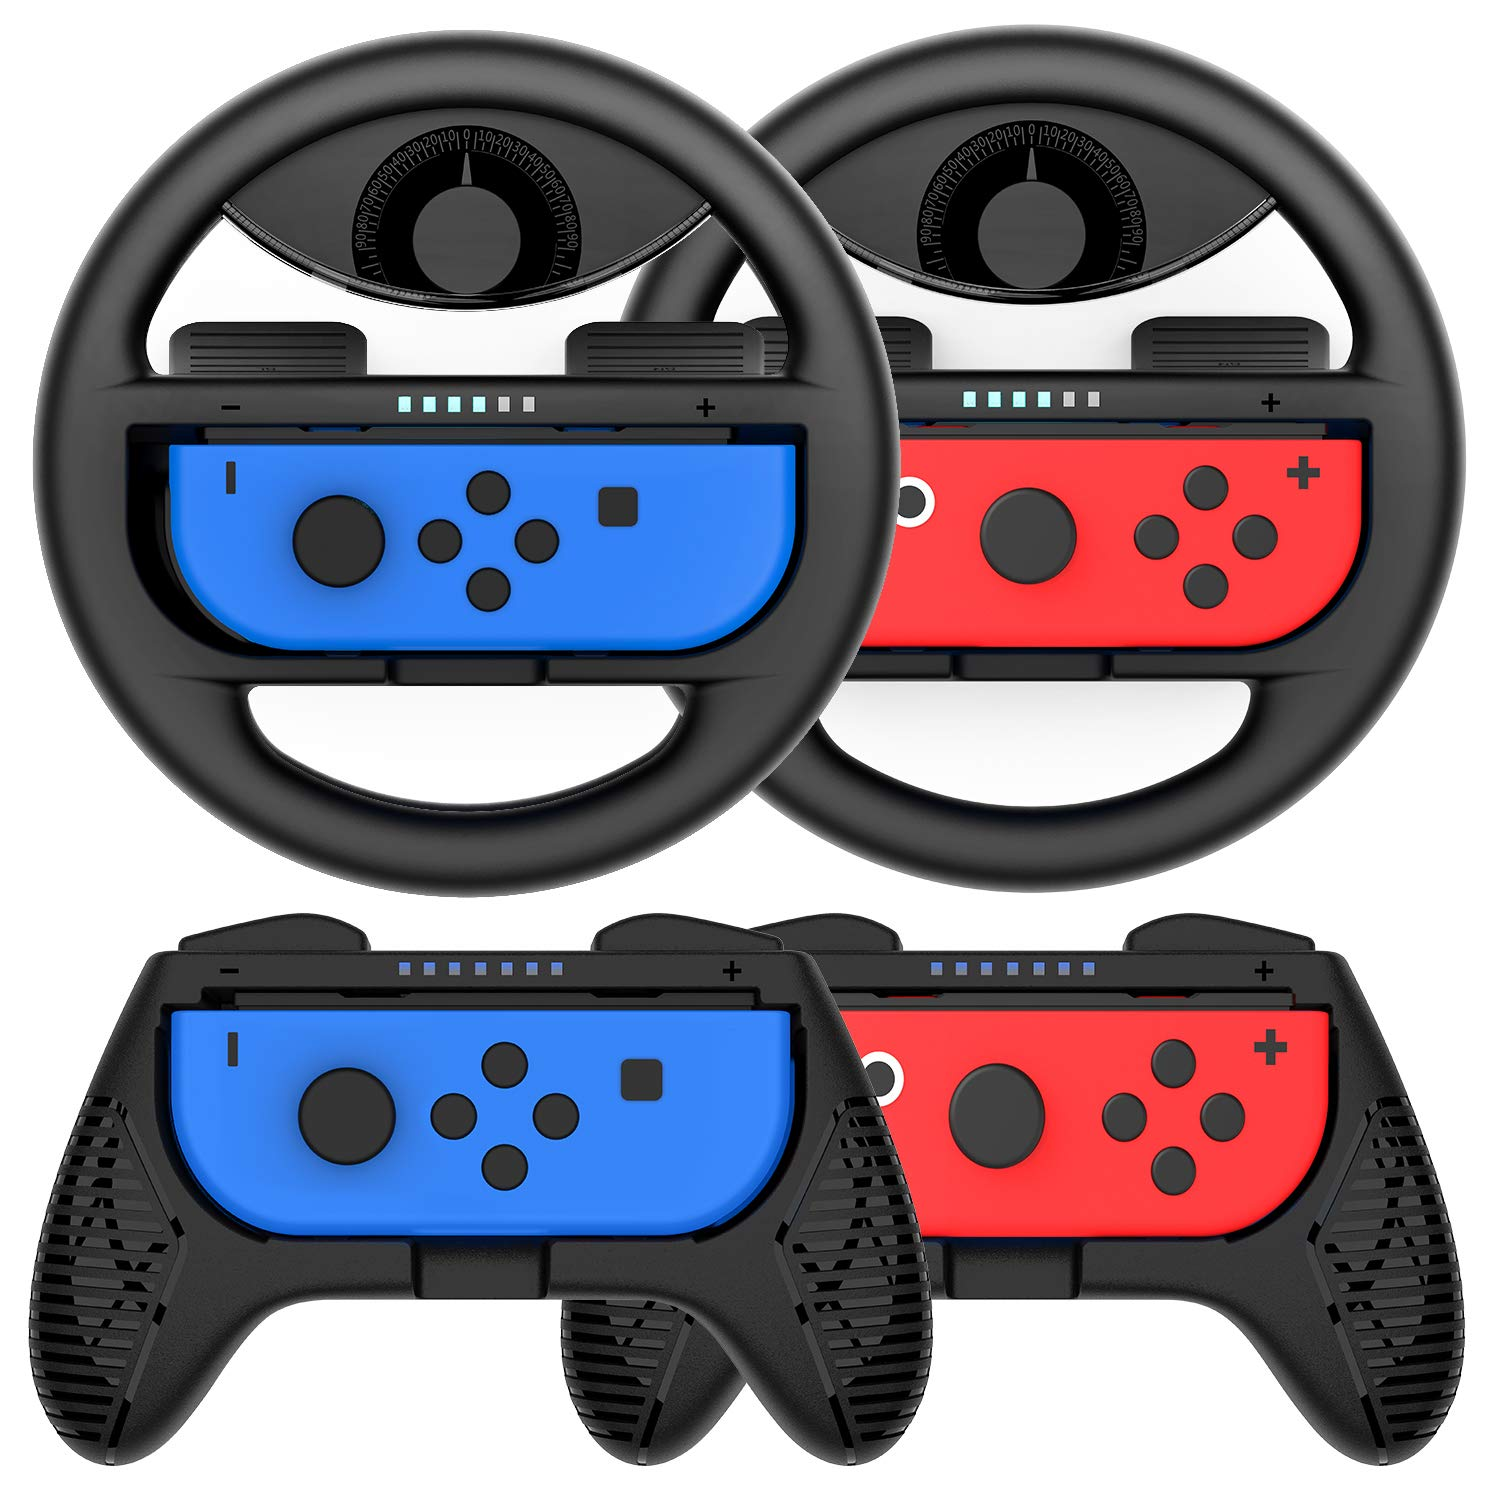 Momen Grip for Nintendo Switch Controller - 4 Pack Racing Steering Wheel Switch Controller Game Grip Handle Kit Fit for Nintendo Switch Joy-Con Controllers (Black) by momen